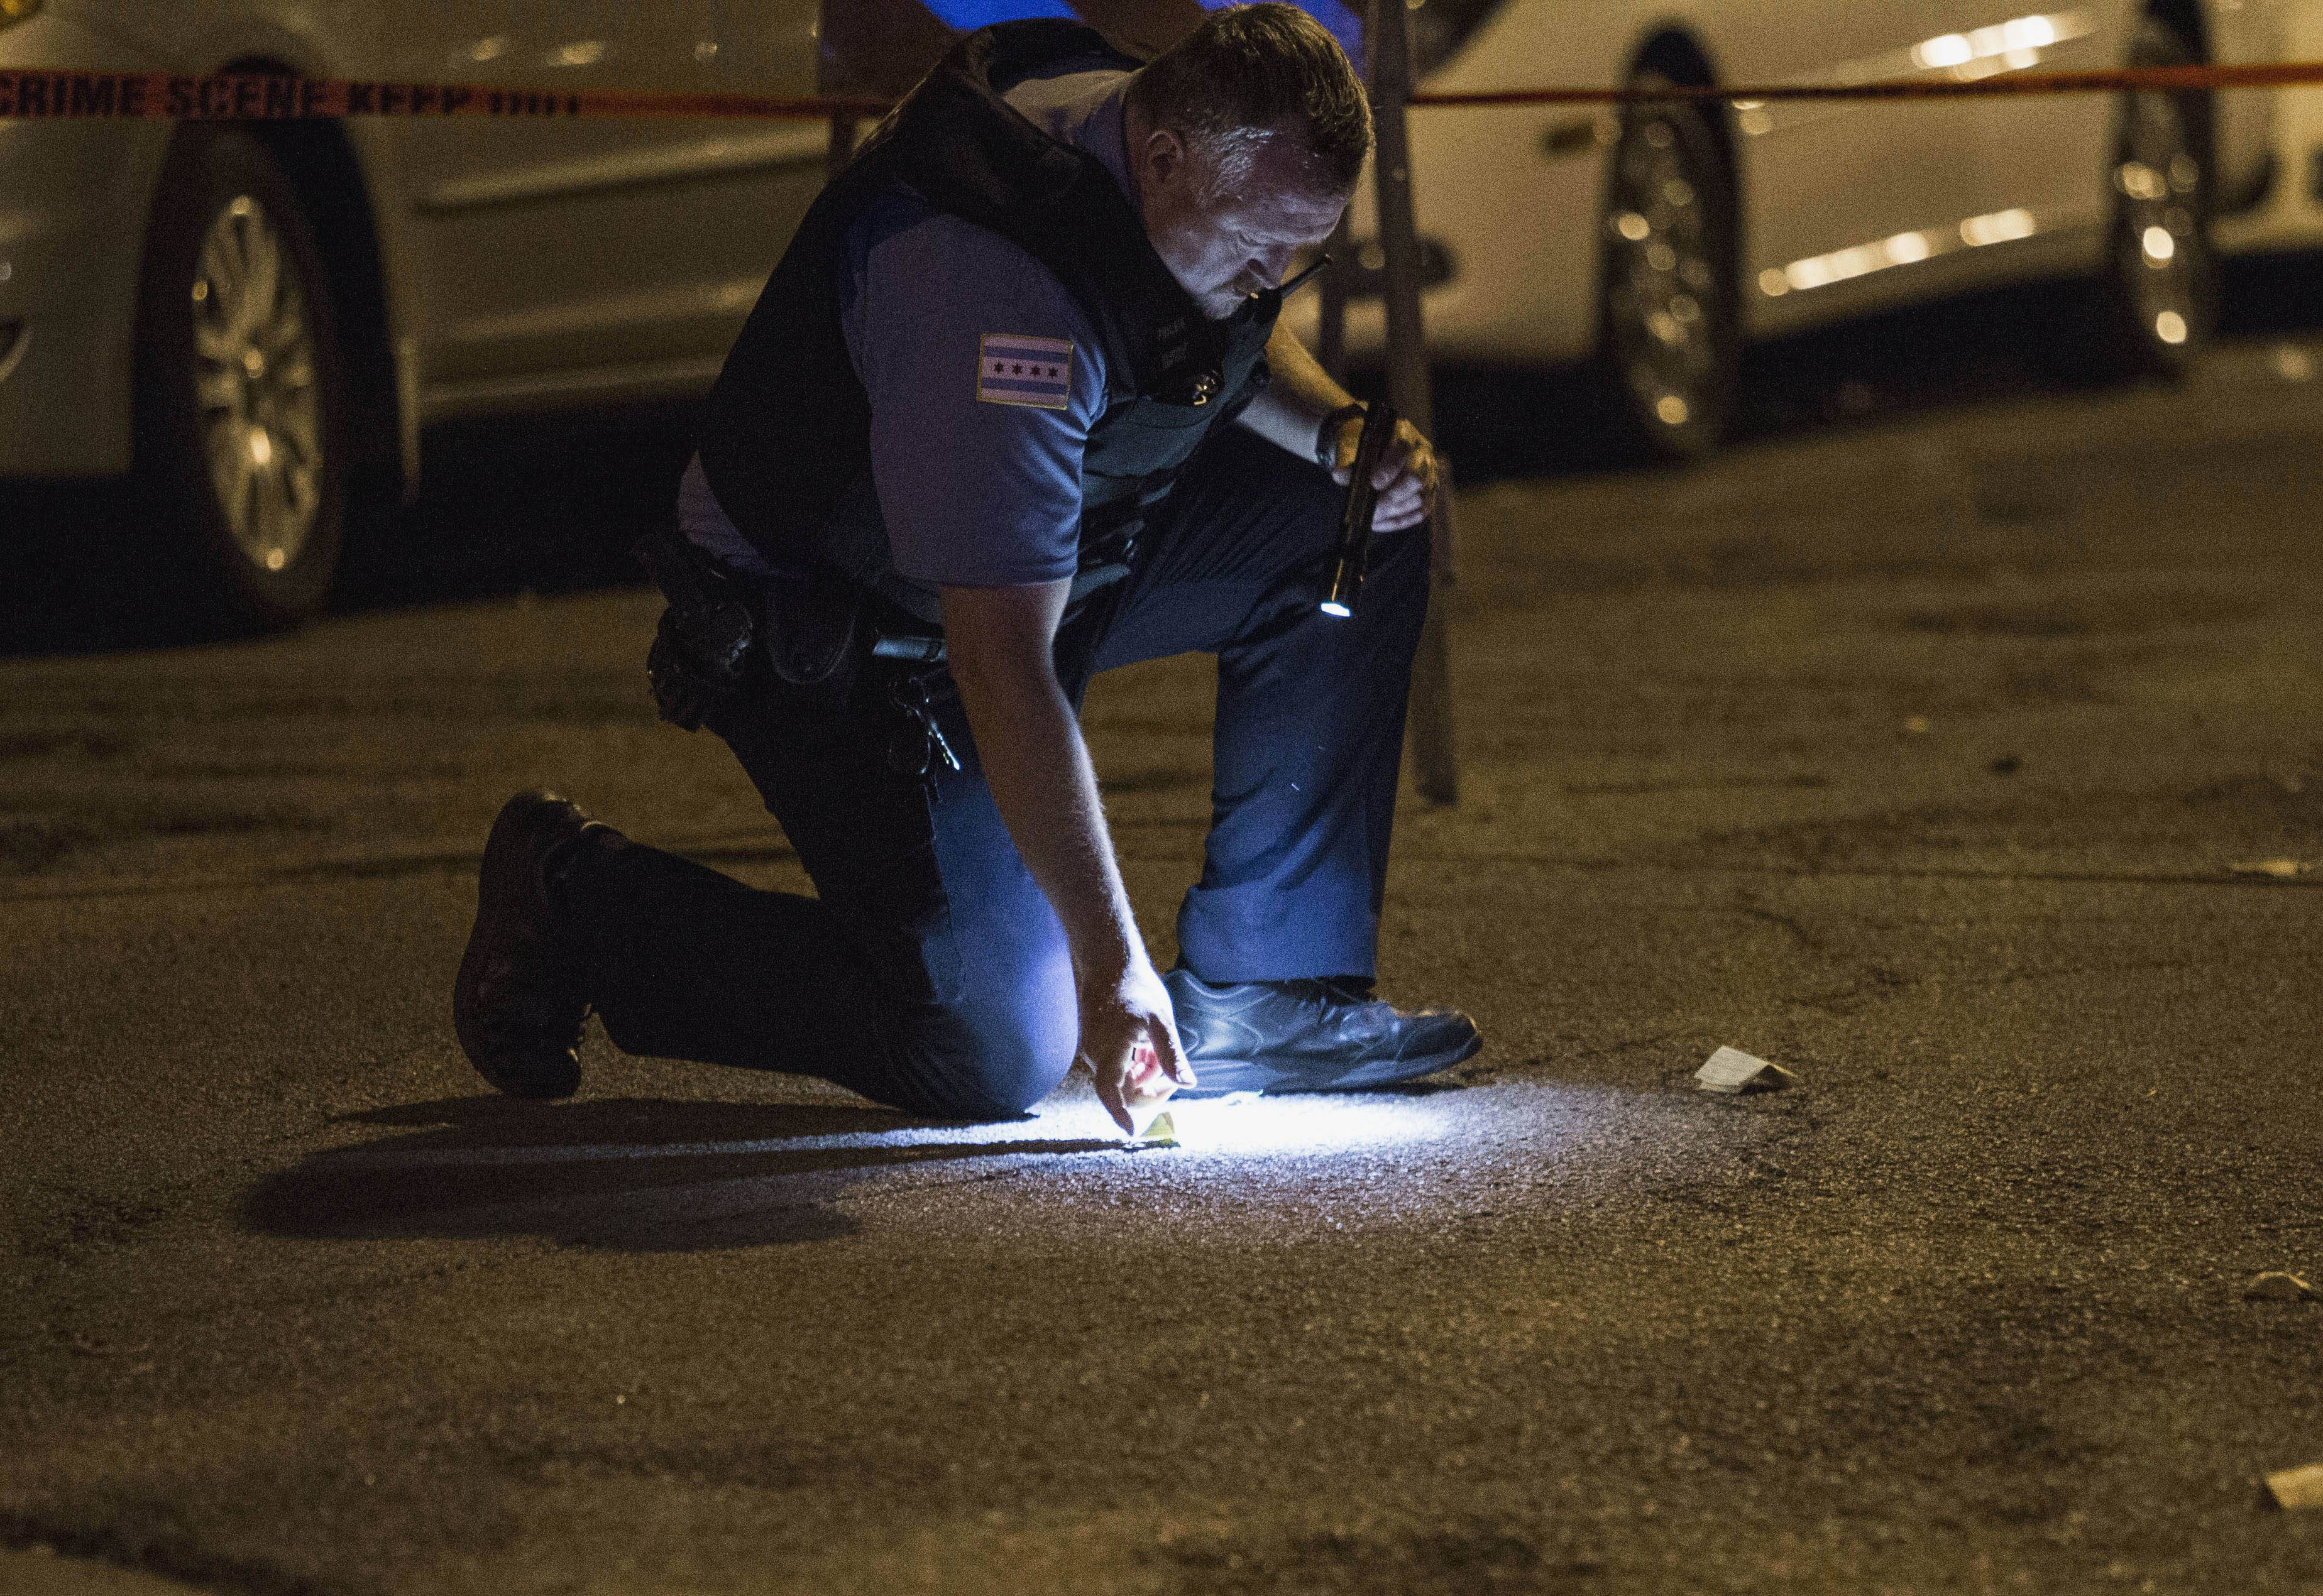 A Chicago police officer checks on evidence at the scene where a man was shot Sunday in Chicago's Uptown neighborhood. The Fourth of July weekend was a bloody one in Chicago, where at least nine people were shot to death and at least 60 others were wounded.